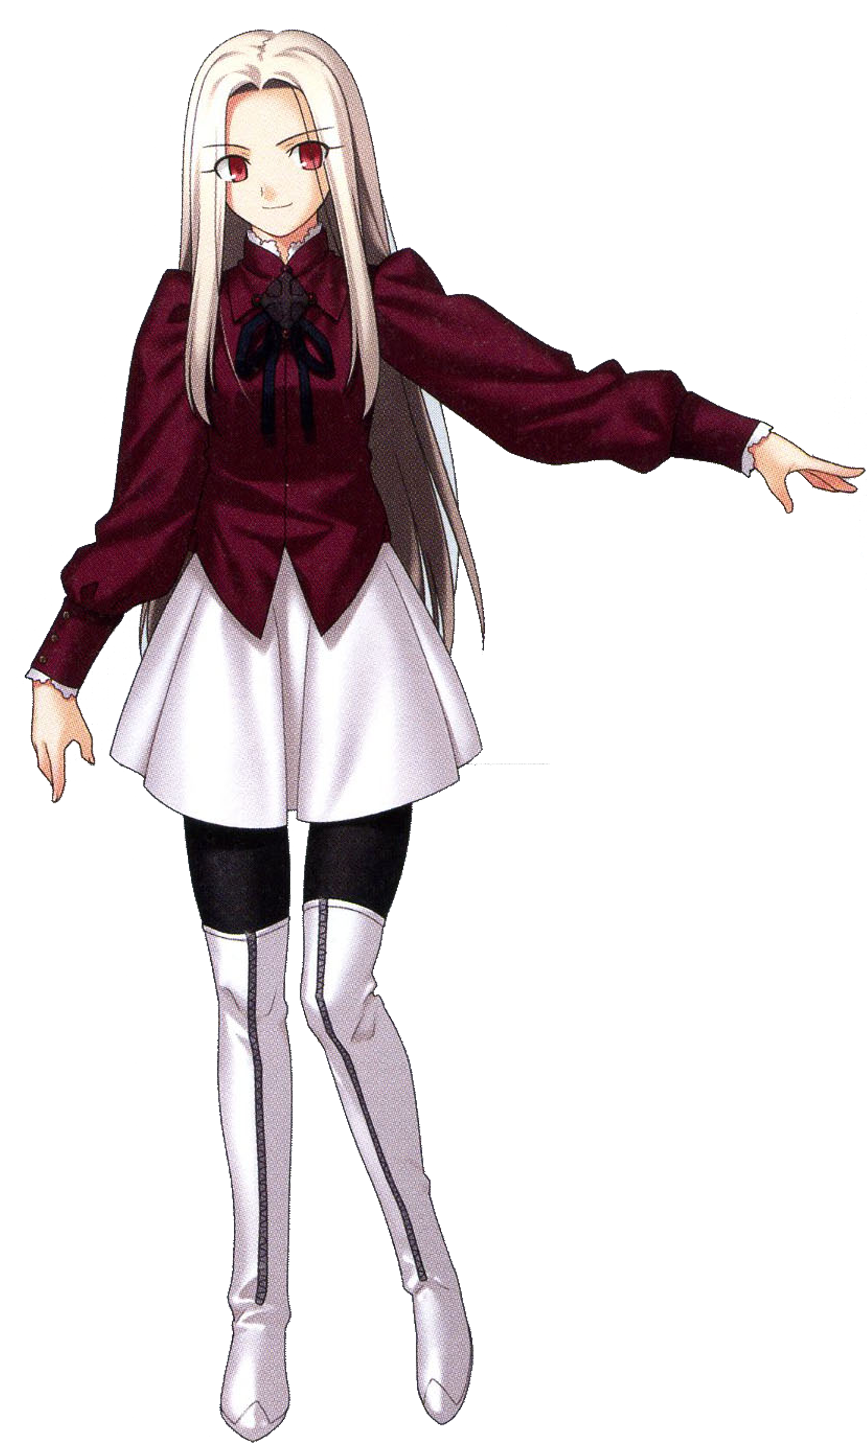 Irisviel von Einzbern | TYPE-MOON Wiki | FANDOM powered by Wikia